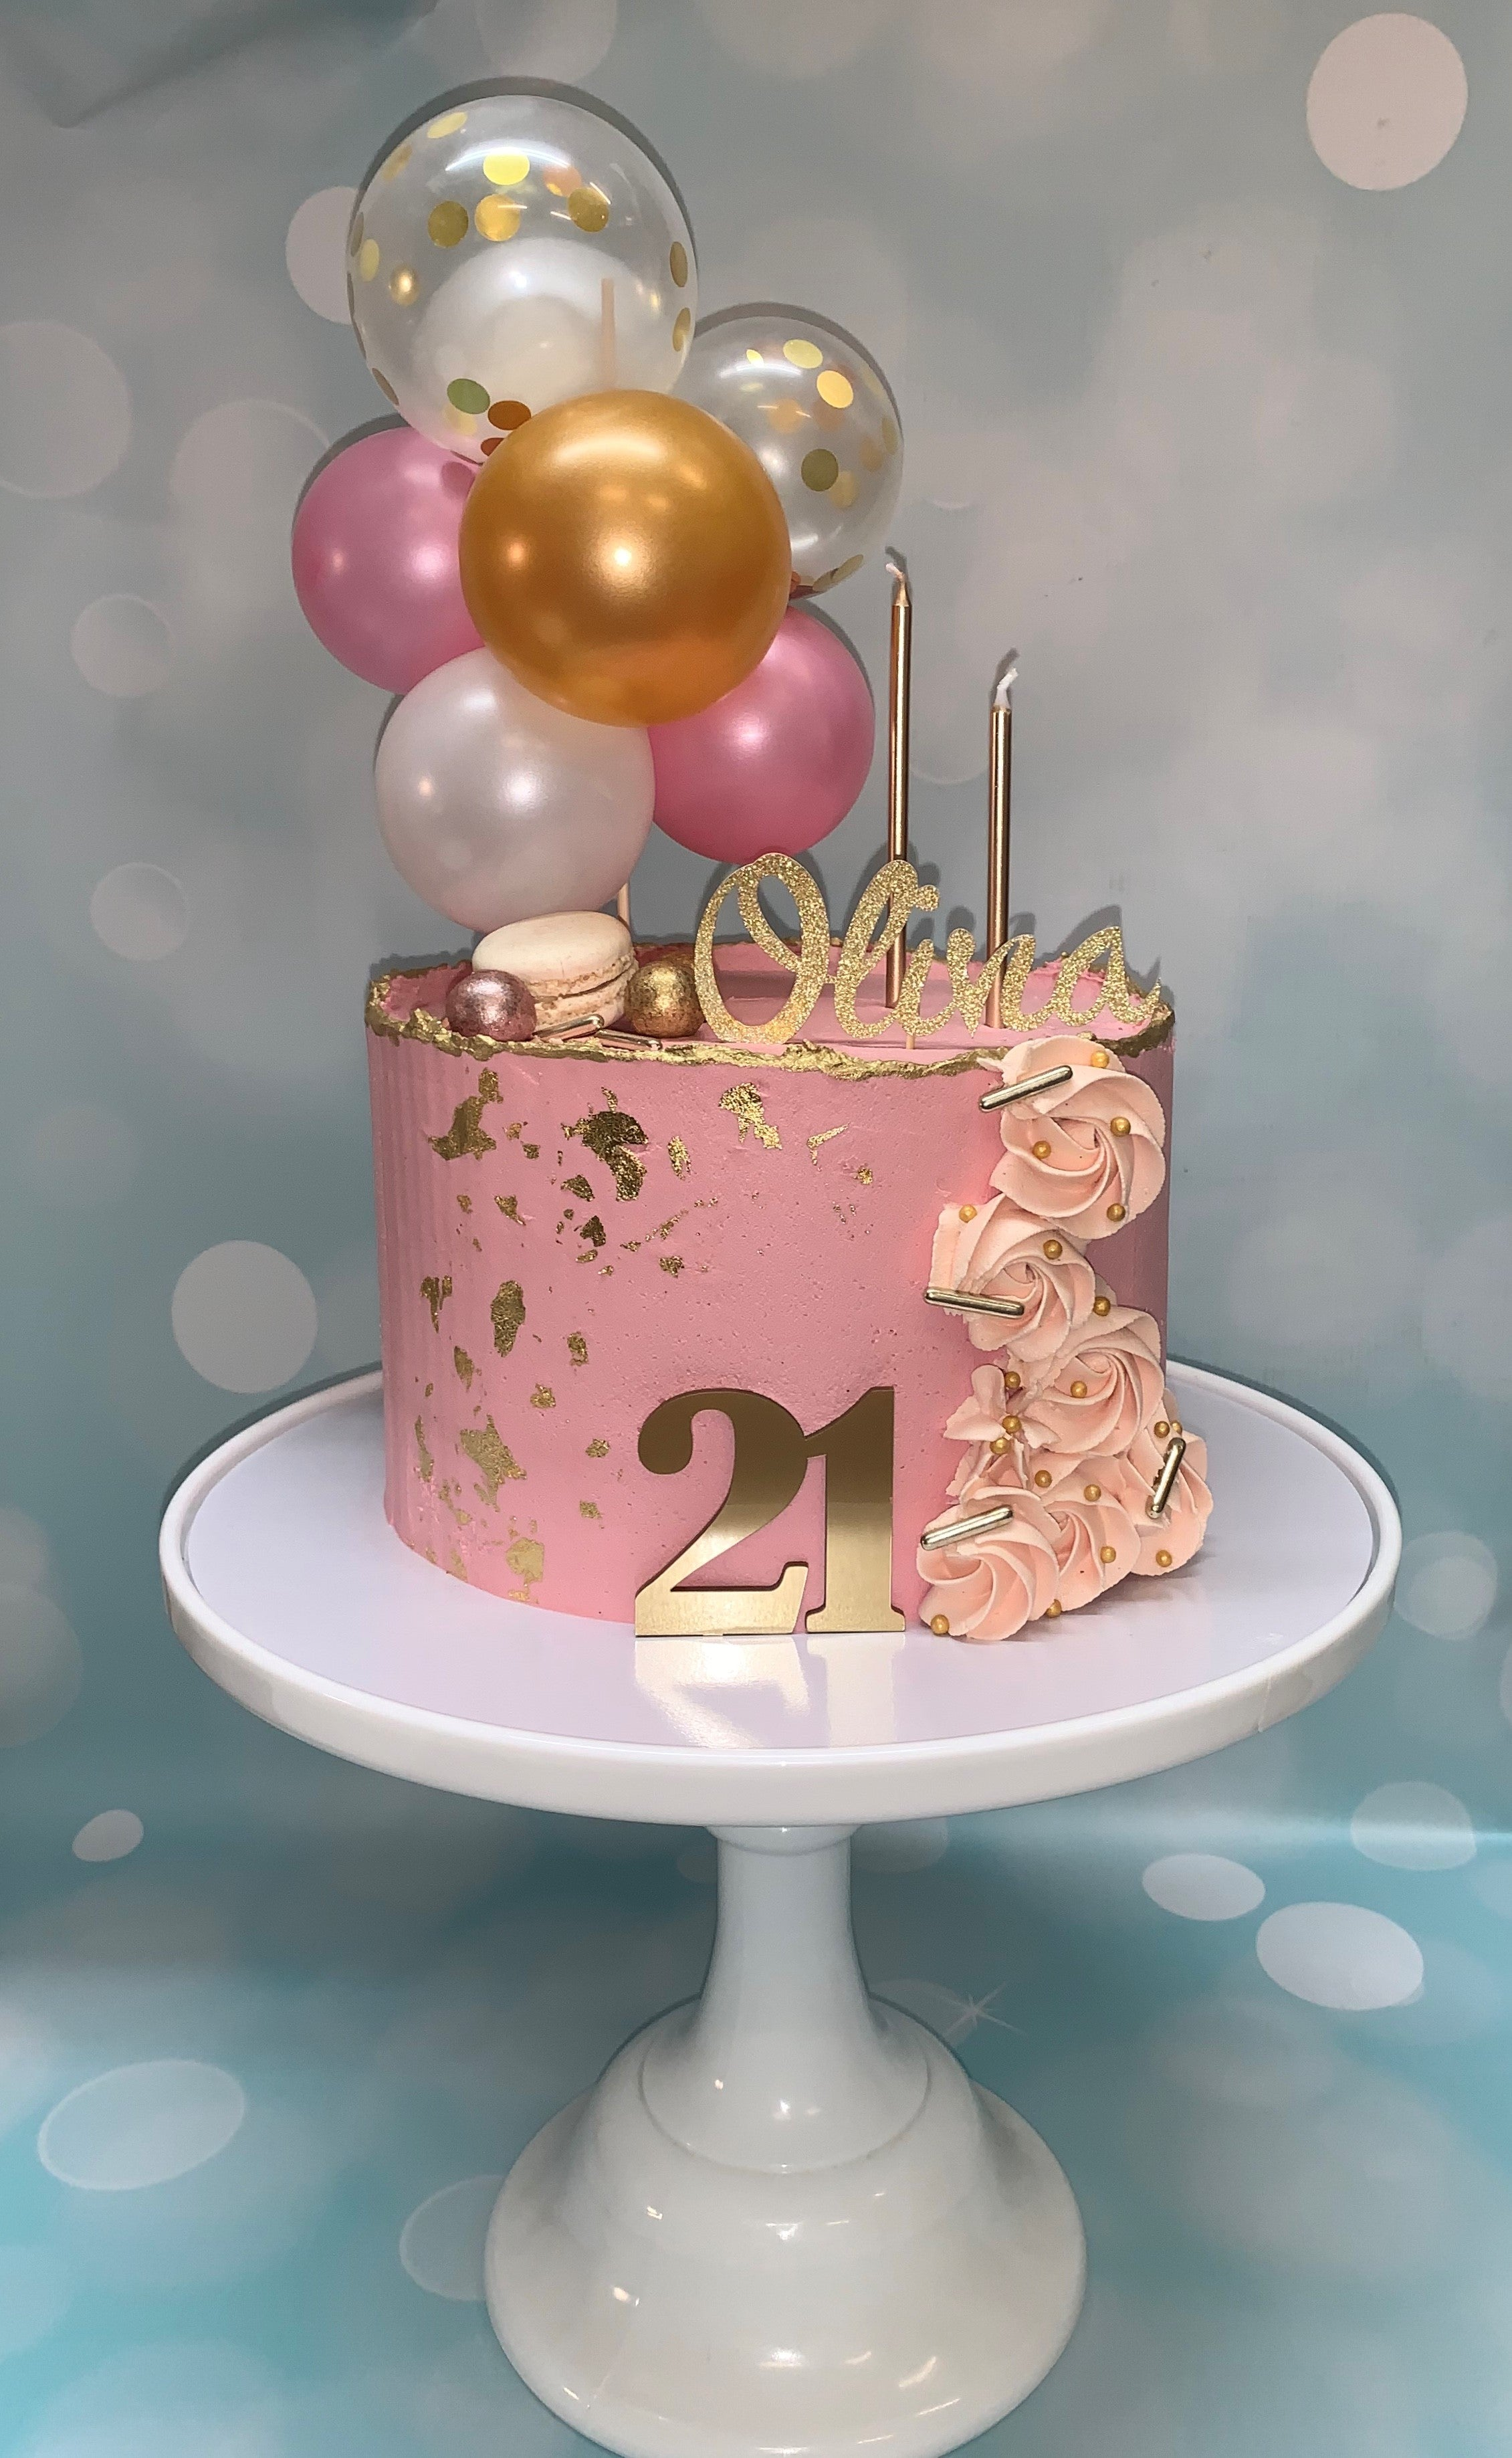 Balloons and Pink Buttercream Birthday Cake